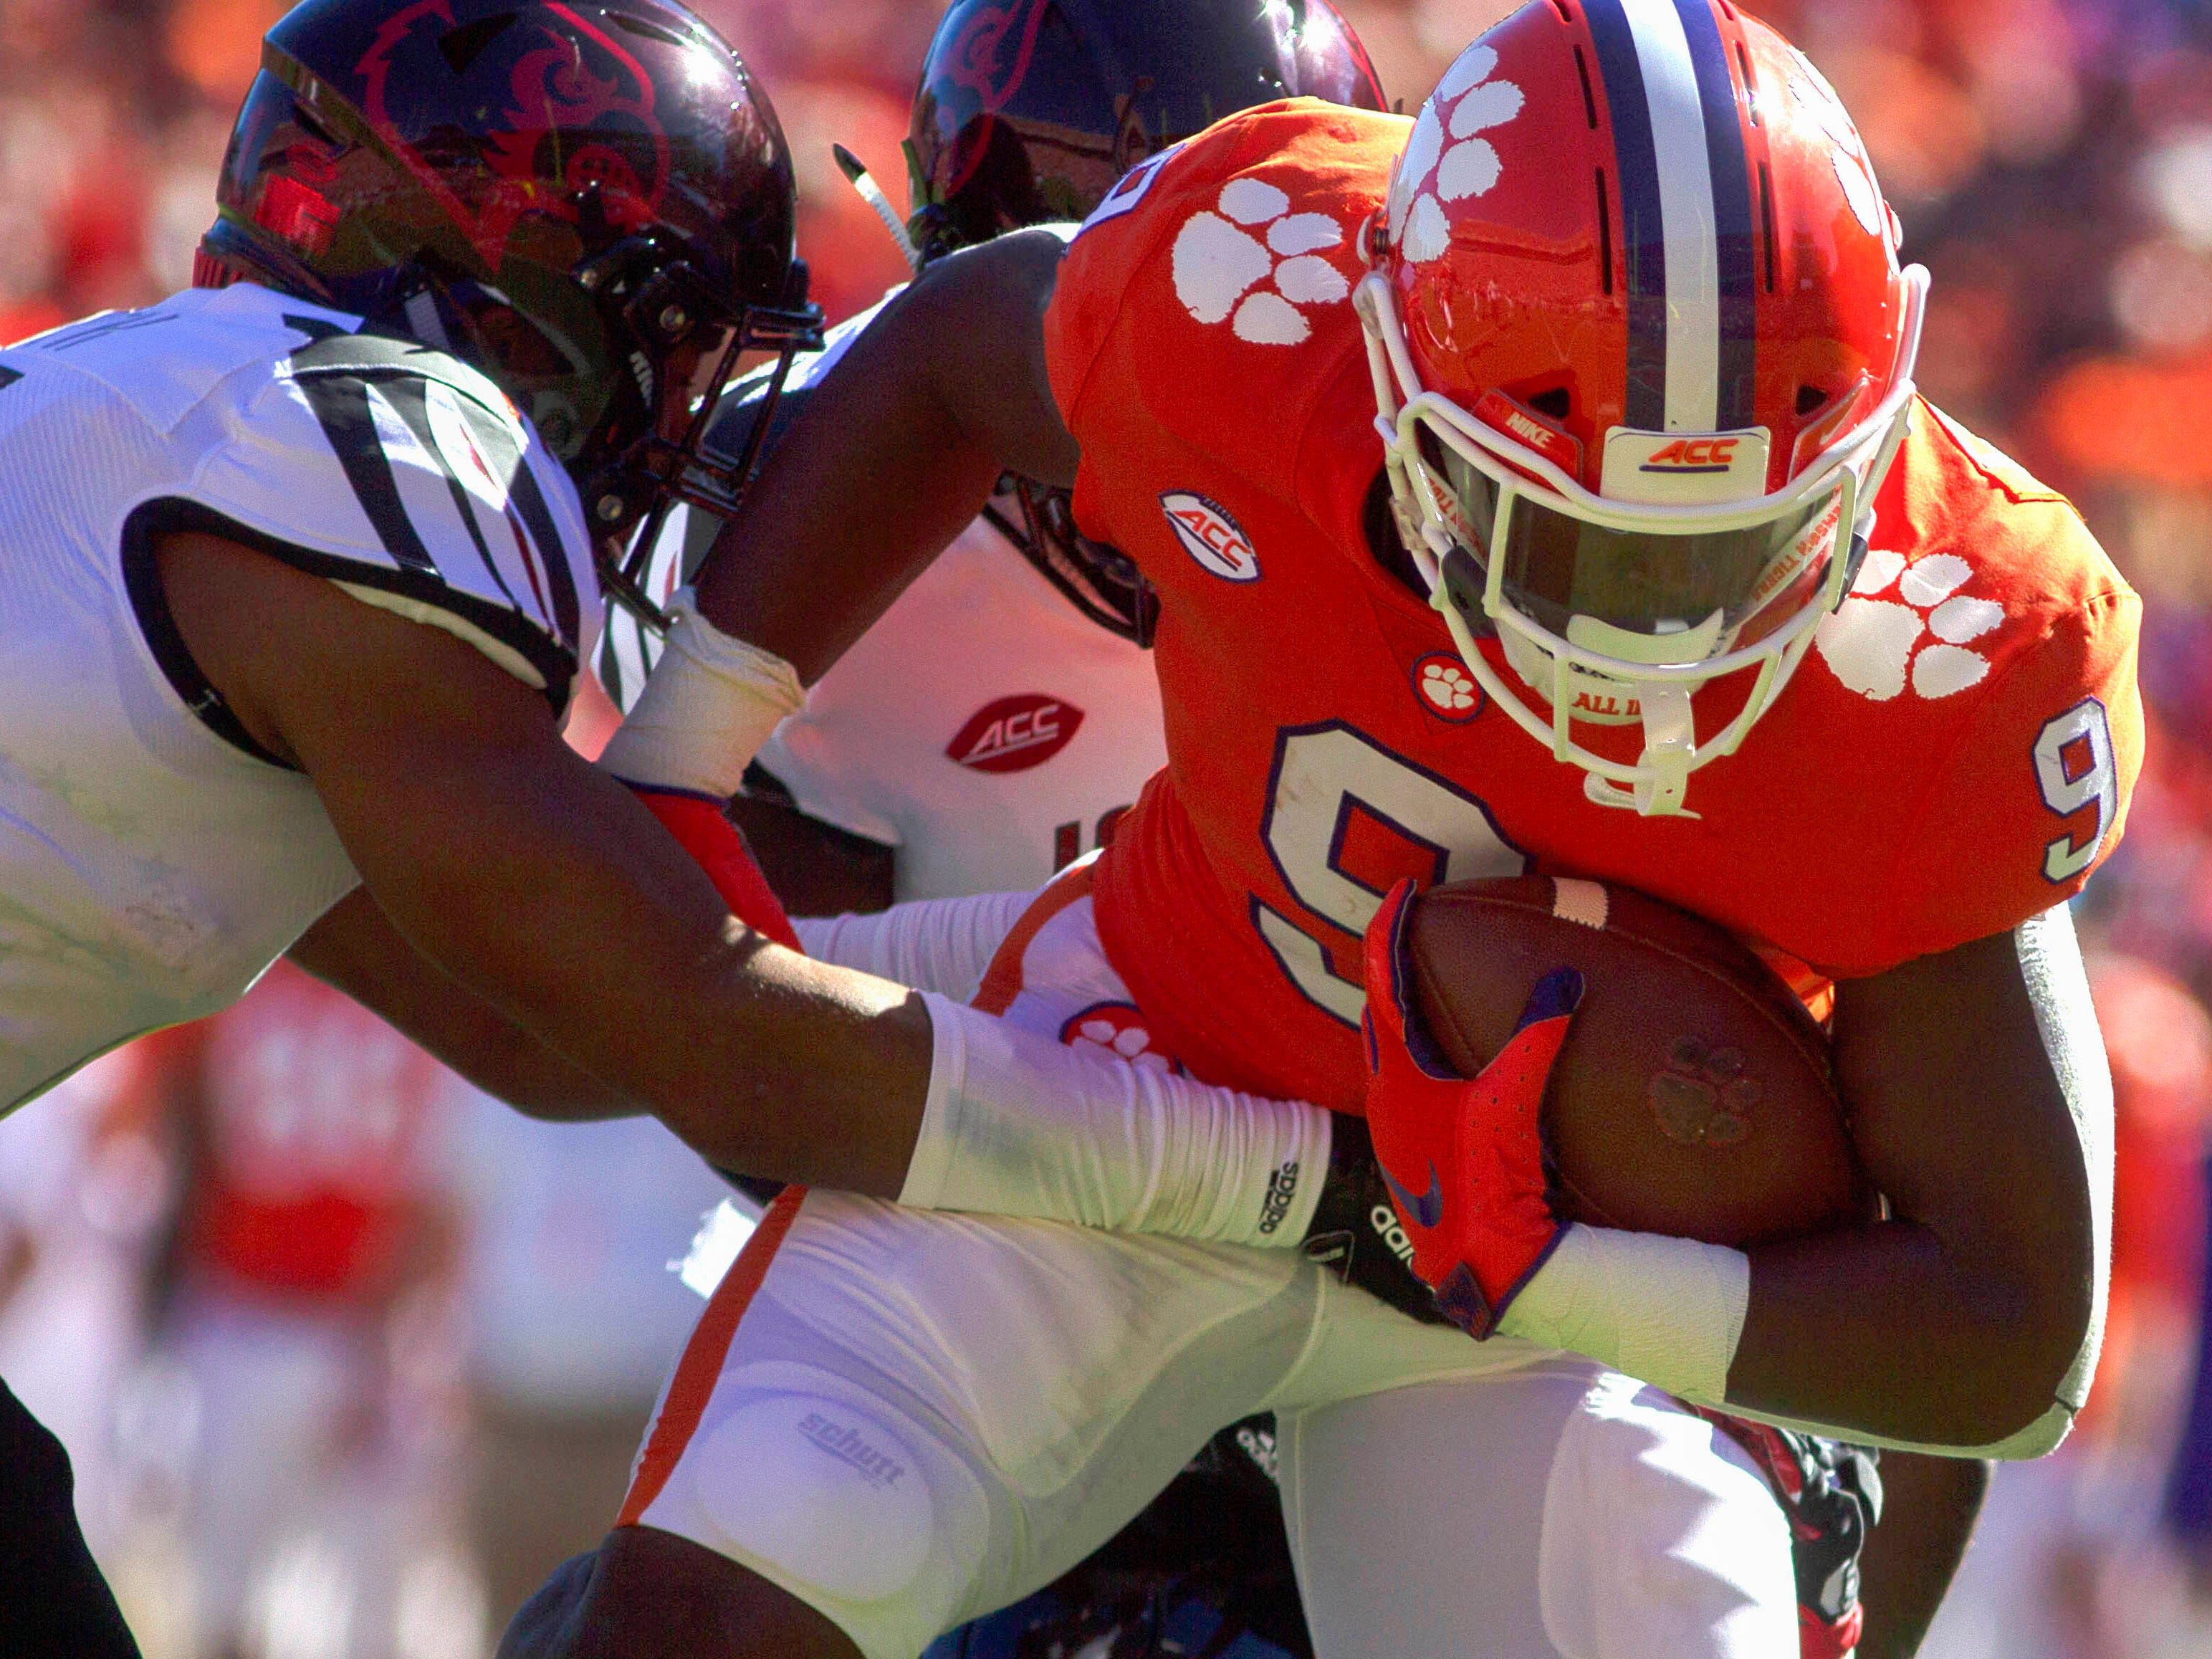 Clemson Tigers running back Travis Etienne breaks through tacklers to score a first-quarter touchdown against Louisville at Clemson Memorial Stadium.